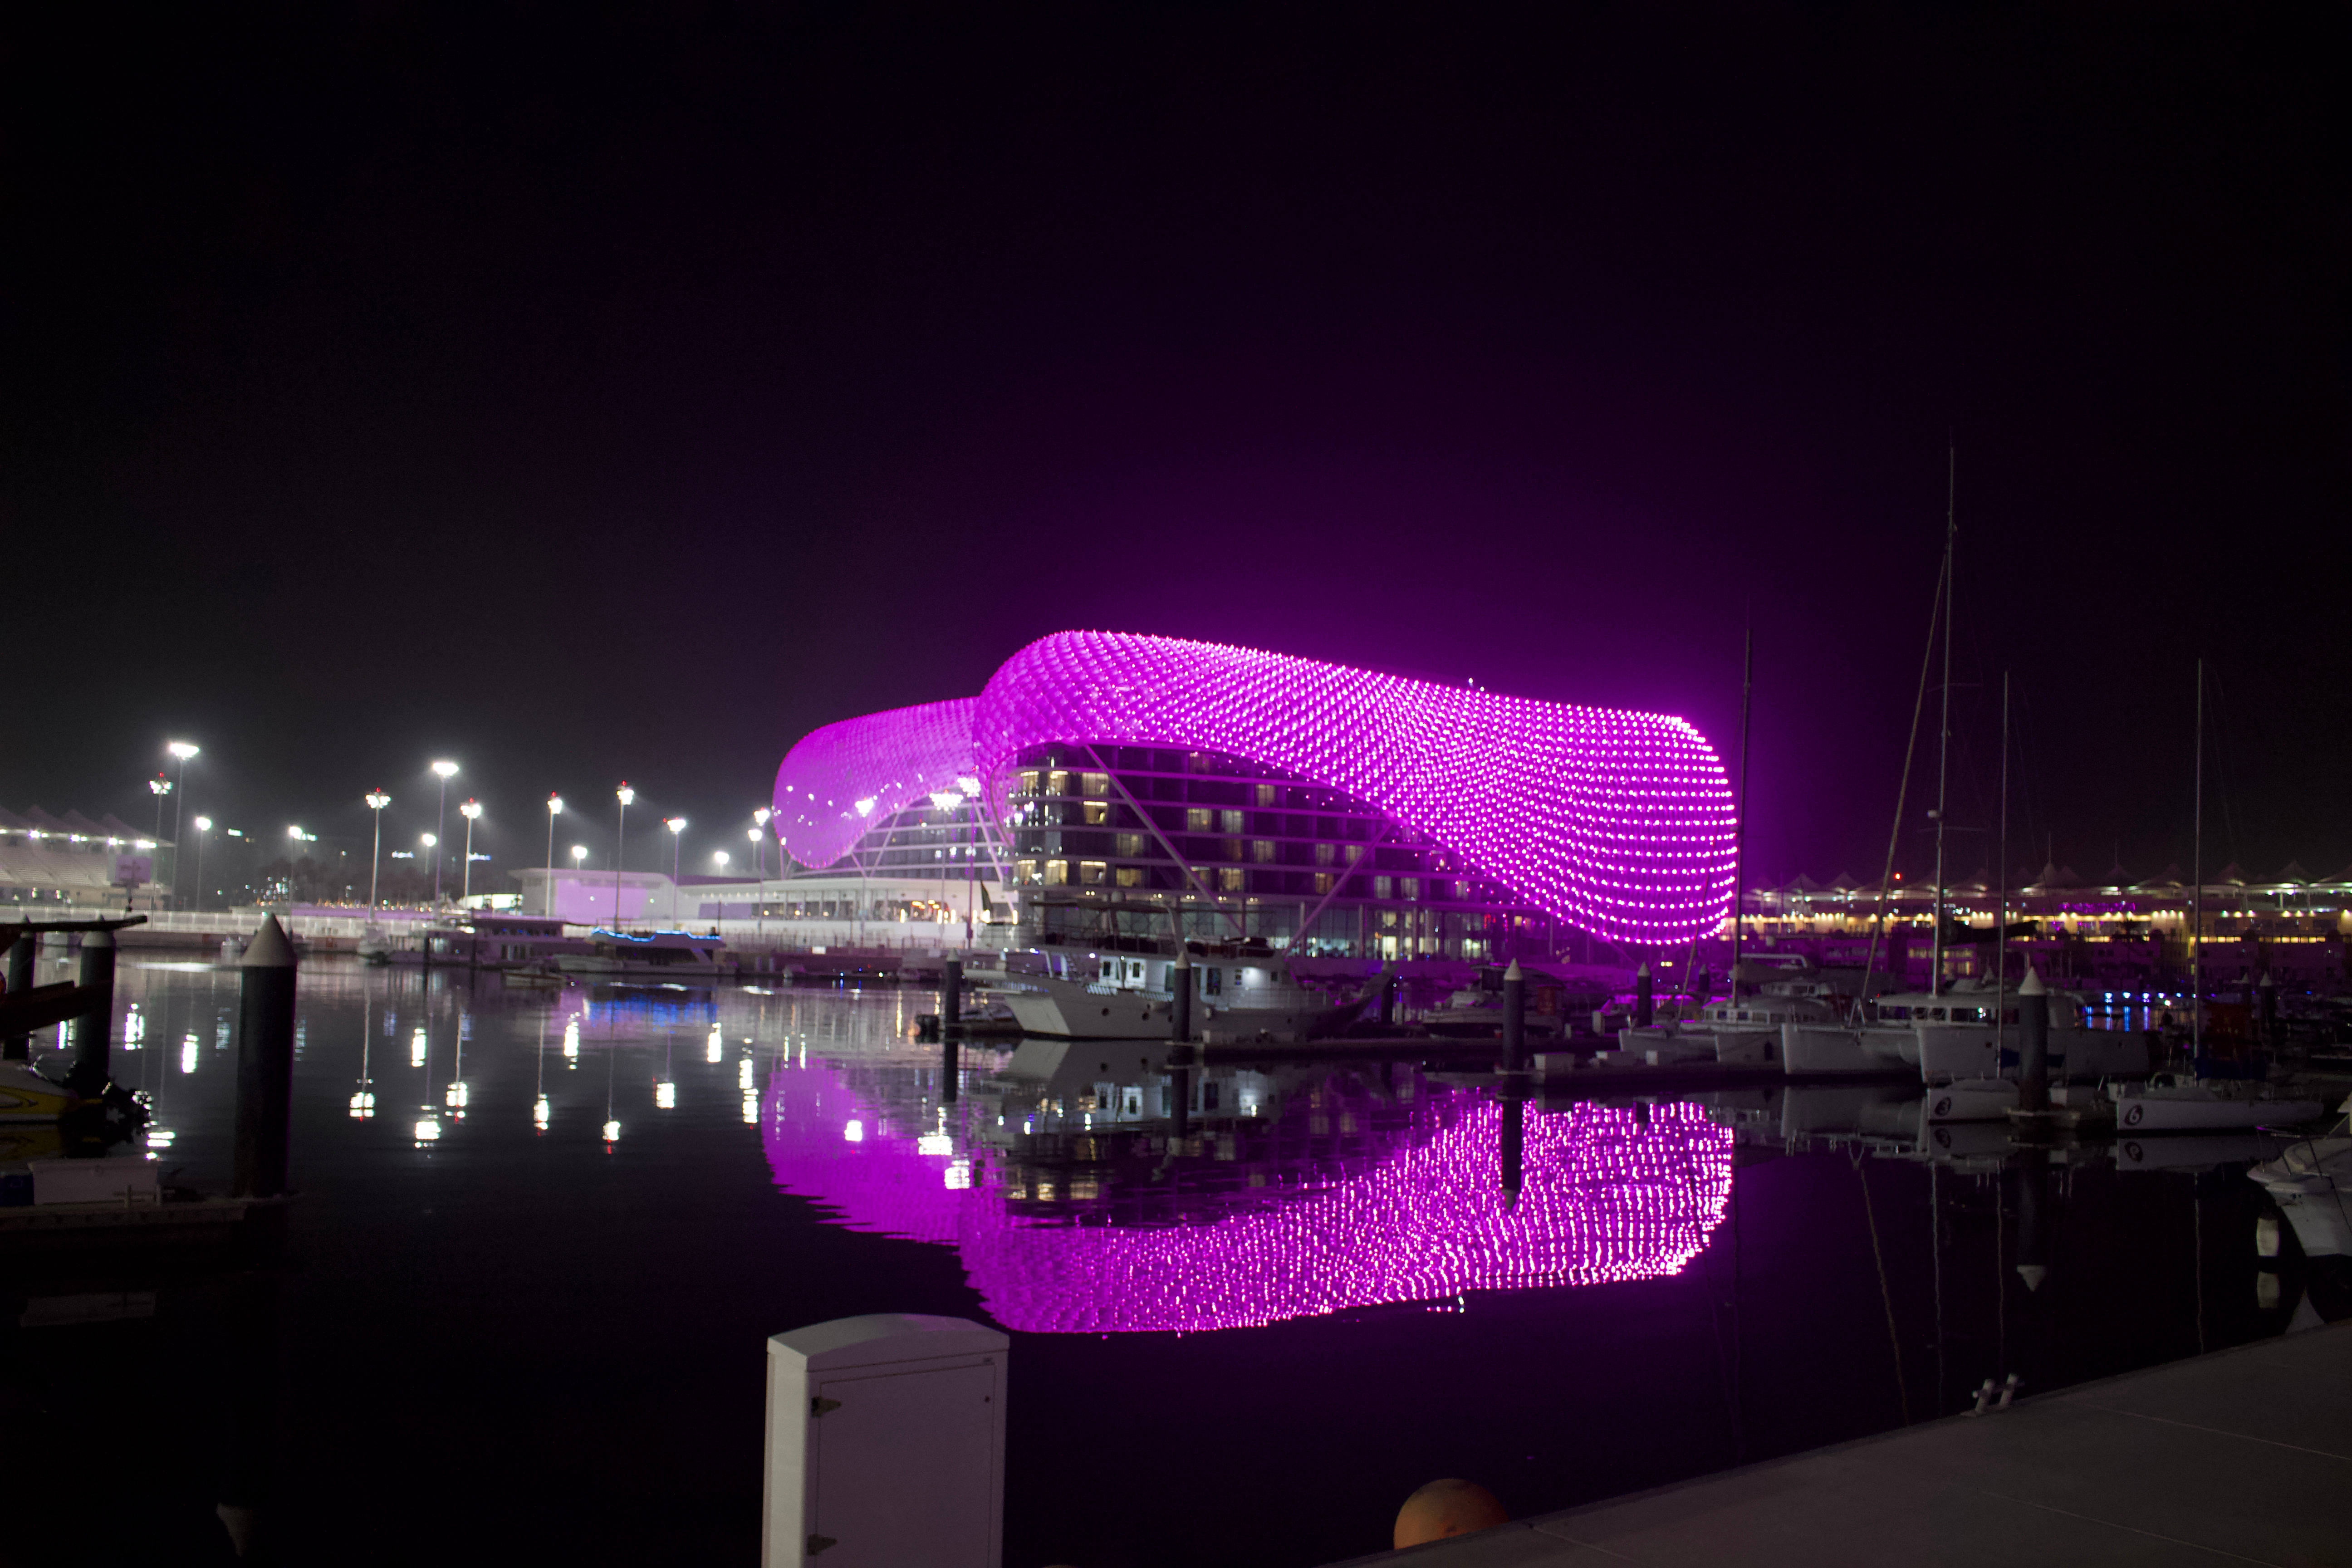 60 UAE hotels to Raise Funds for Al Jalila Foundation for Breast Cance